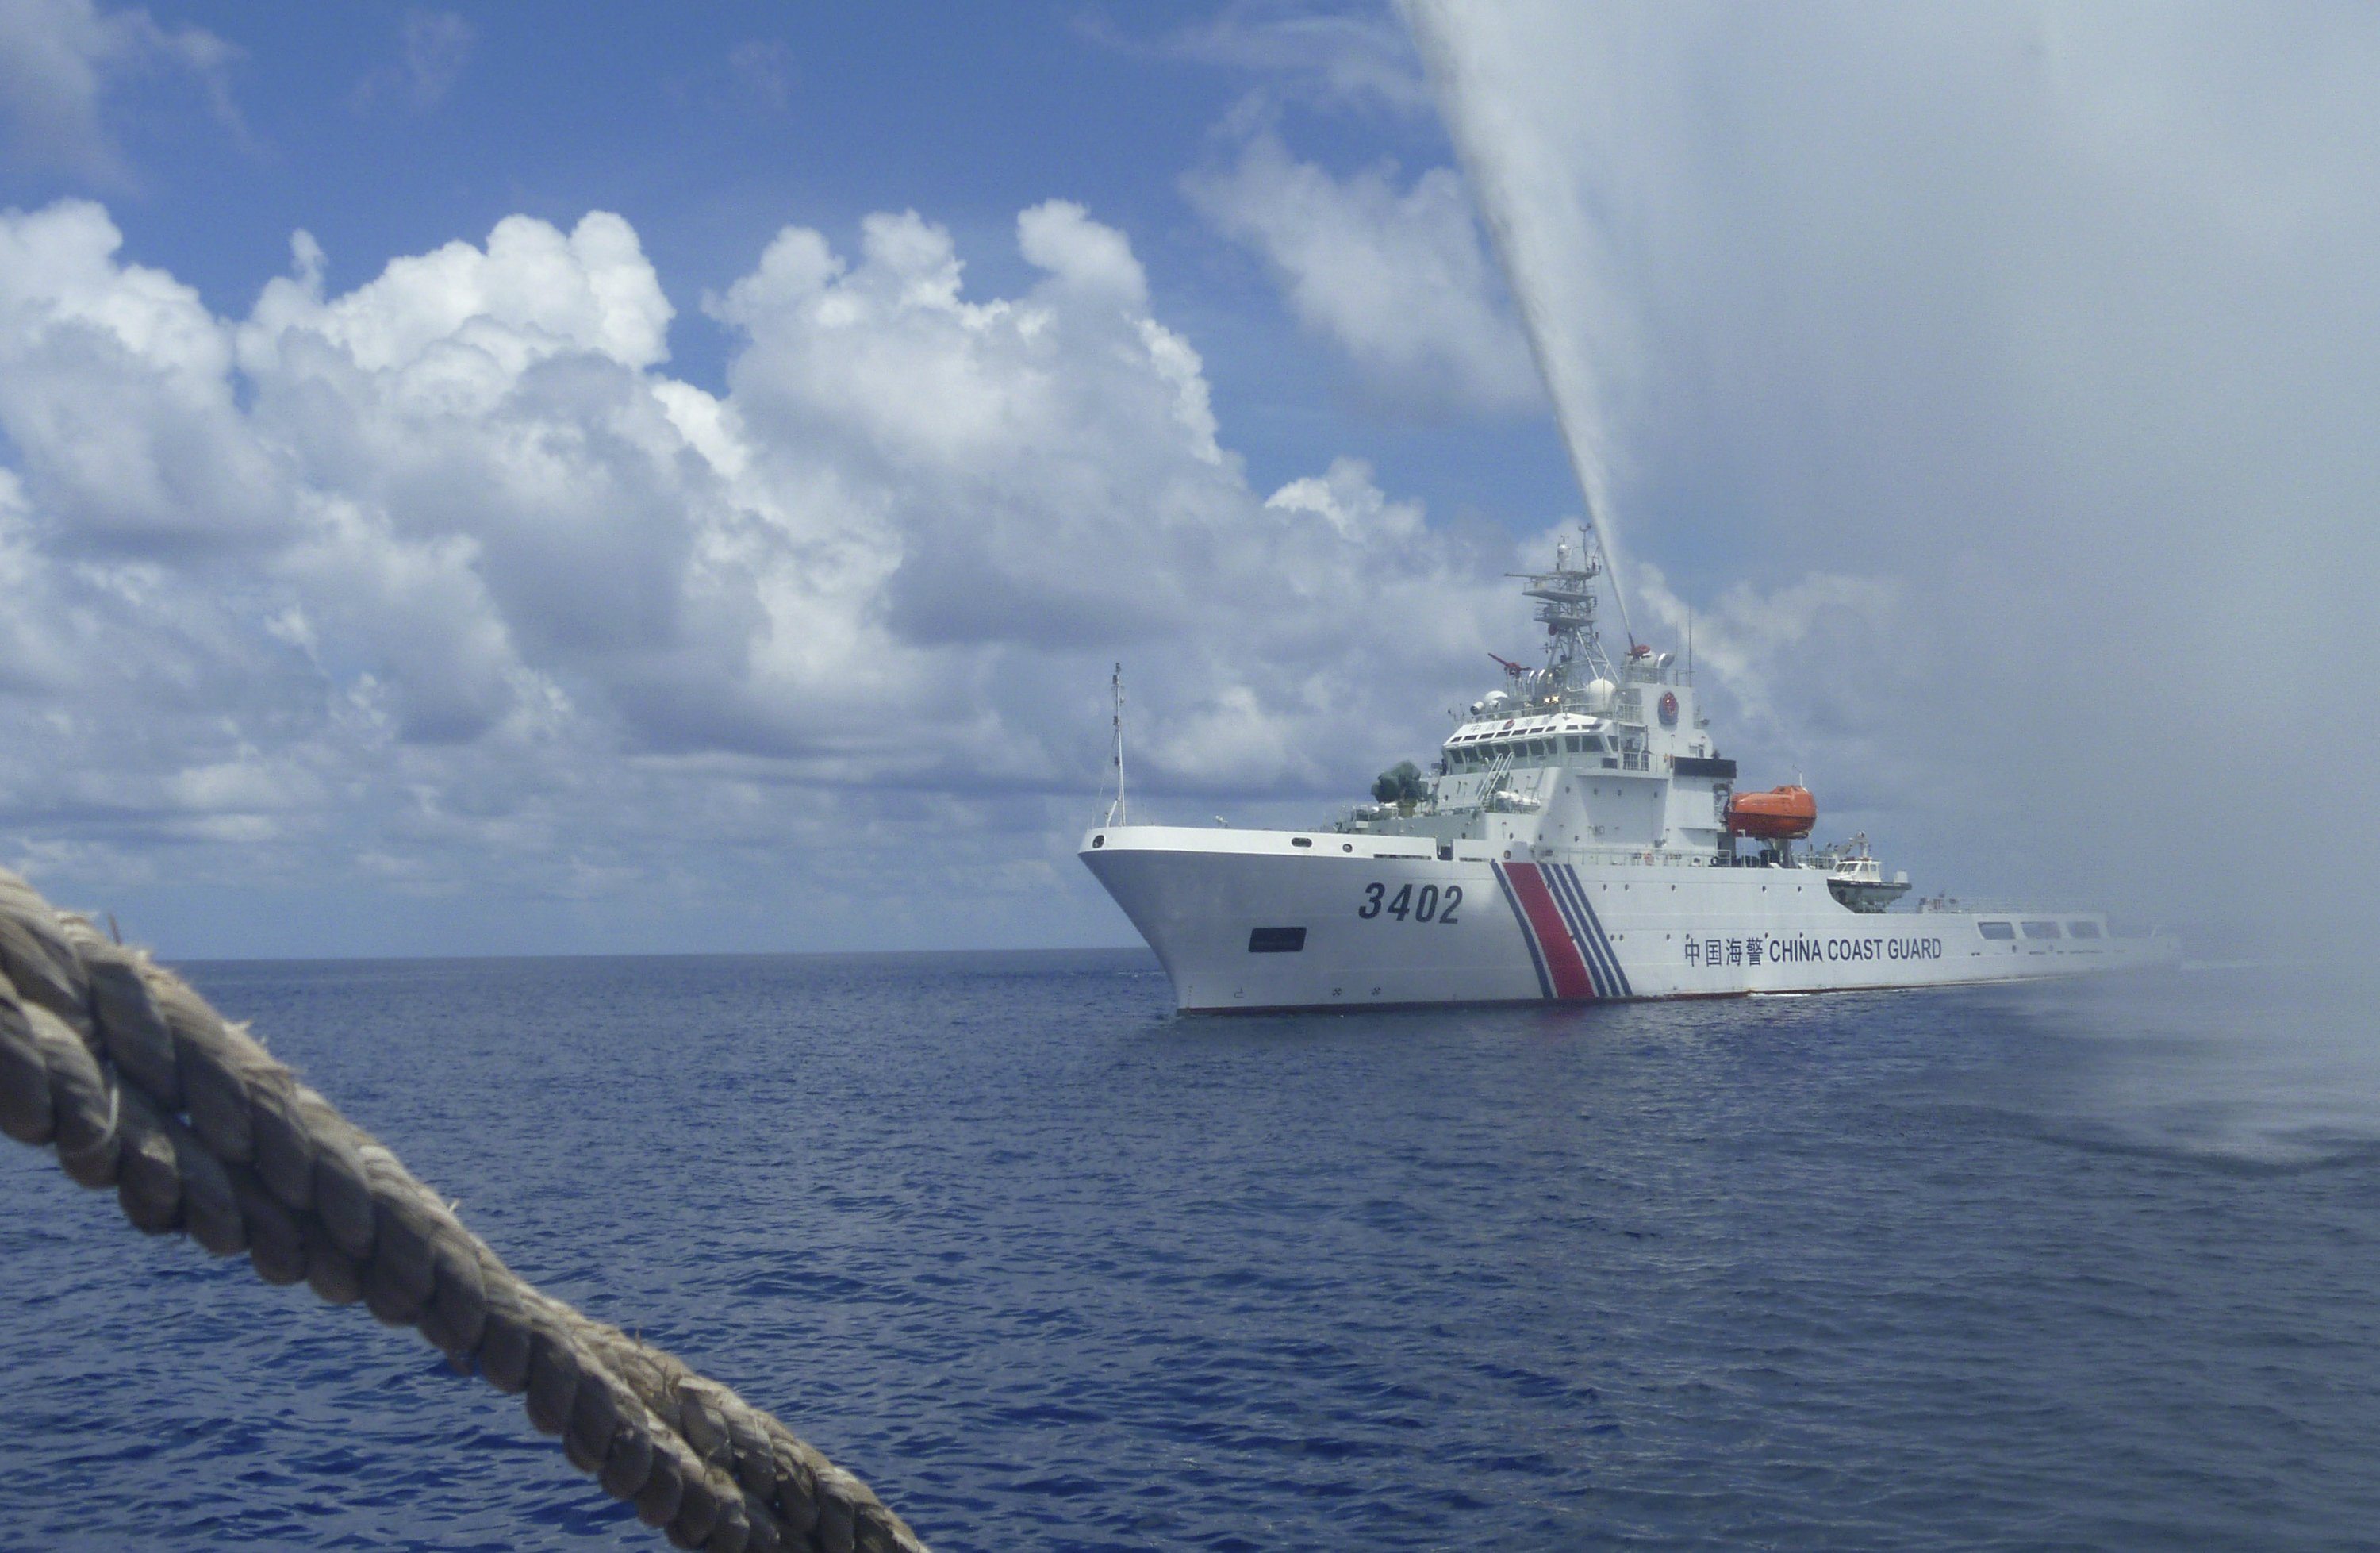 Philippines, US verifying if Chinese left disputed shoal